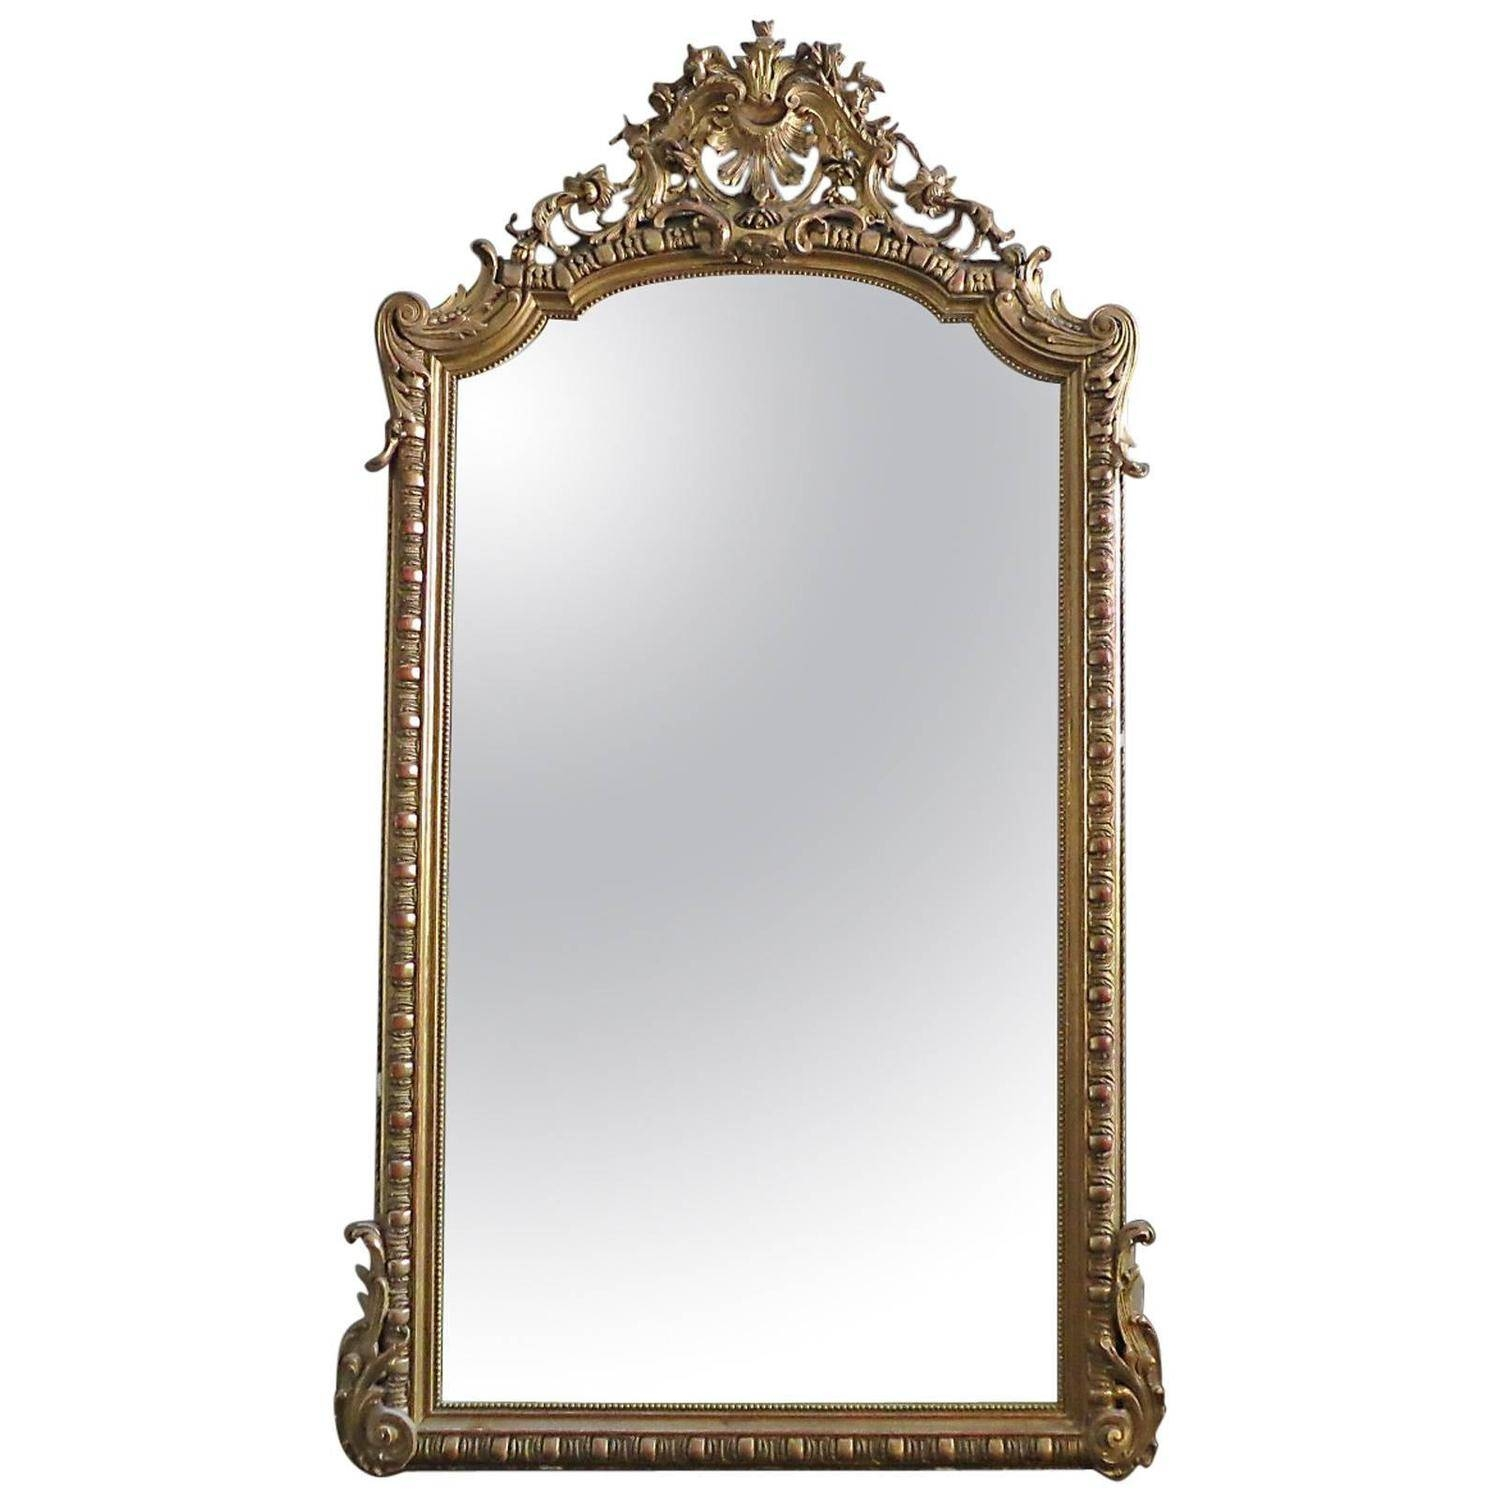 Large Antique French Gold Gilt Mirror At 1Stdibs pertaining to Large Mantel Mirrors (Image 10 of 15)